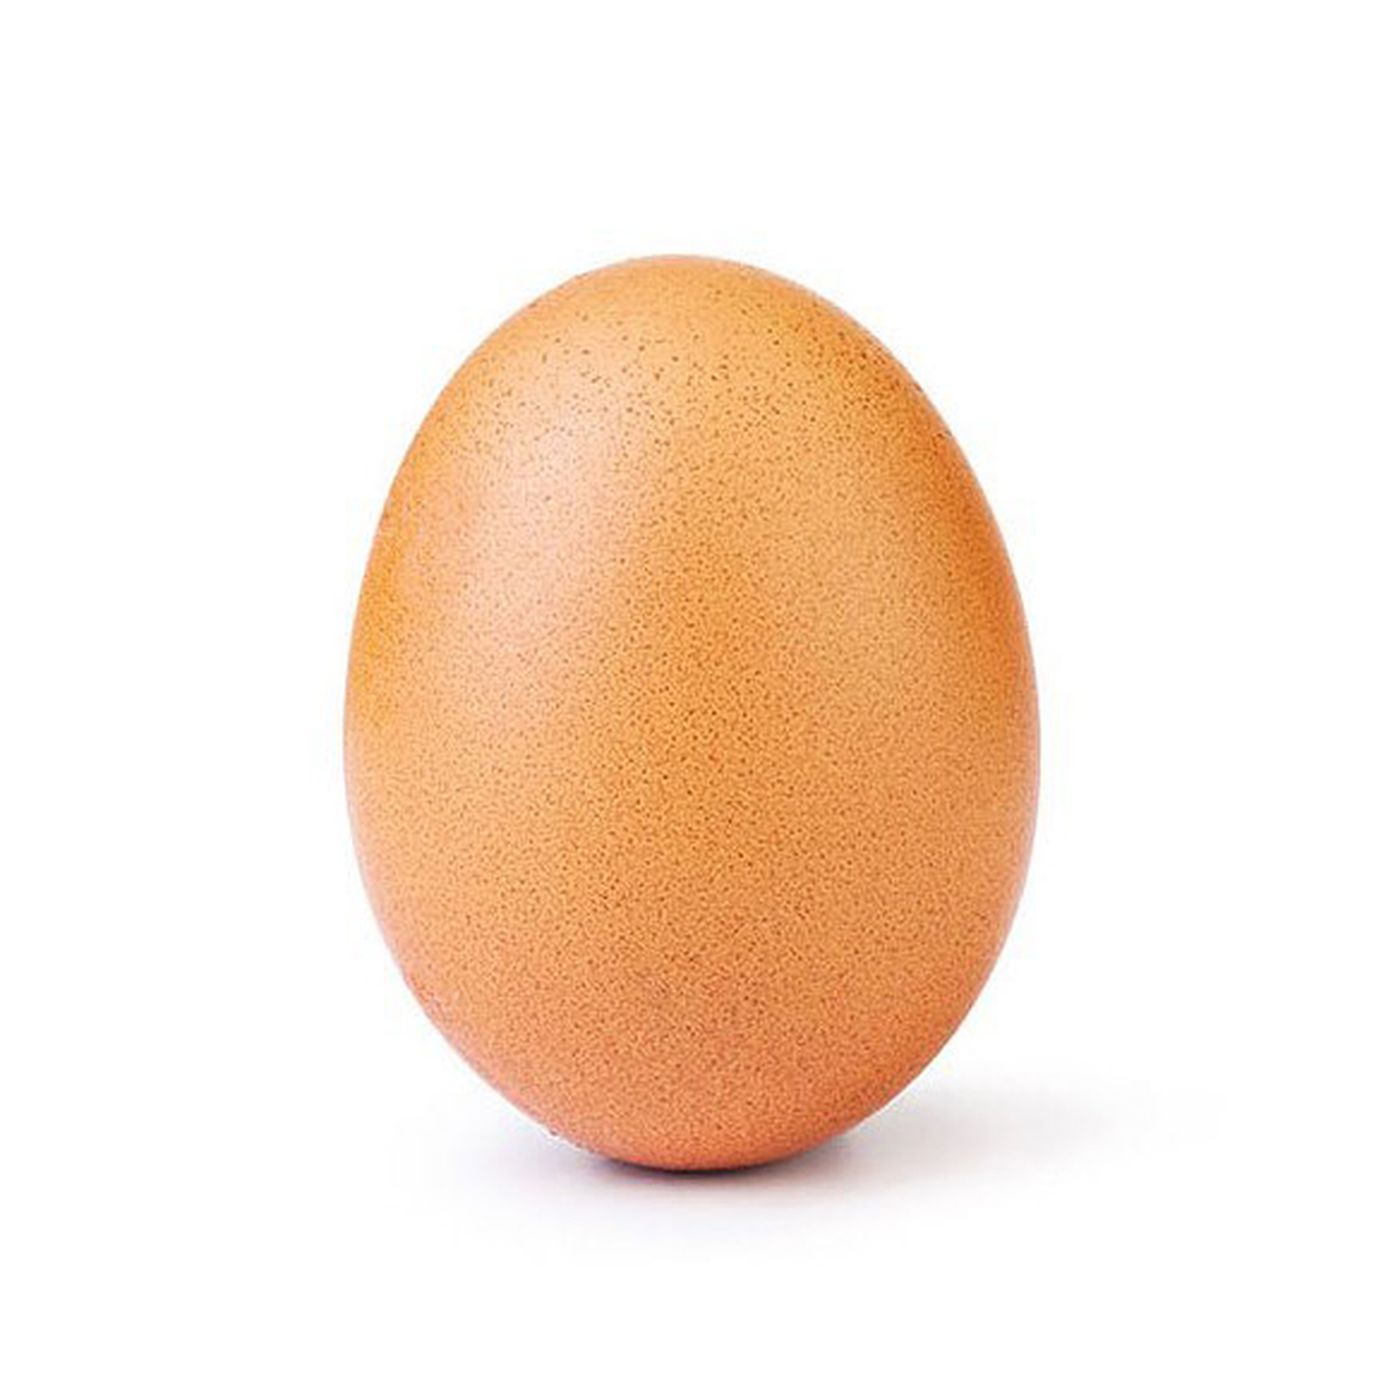 Egg picture beats Kylie Jenner as most-liked Instagram post